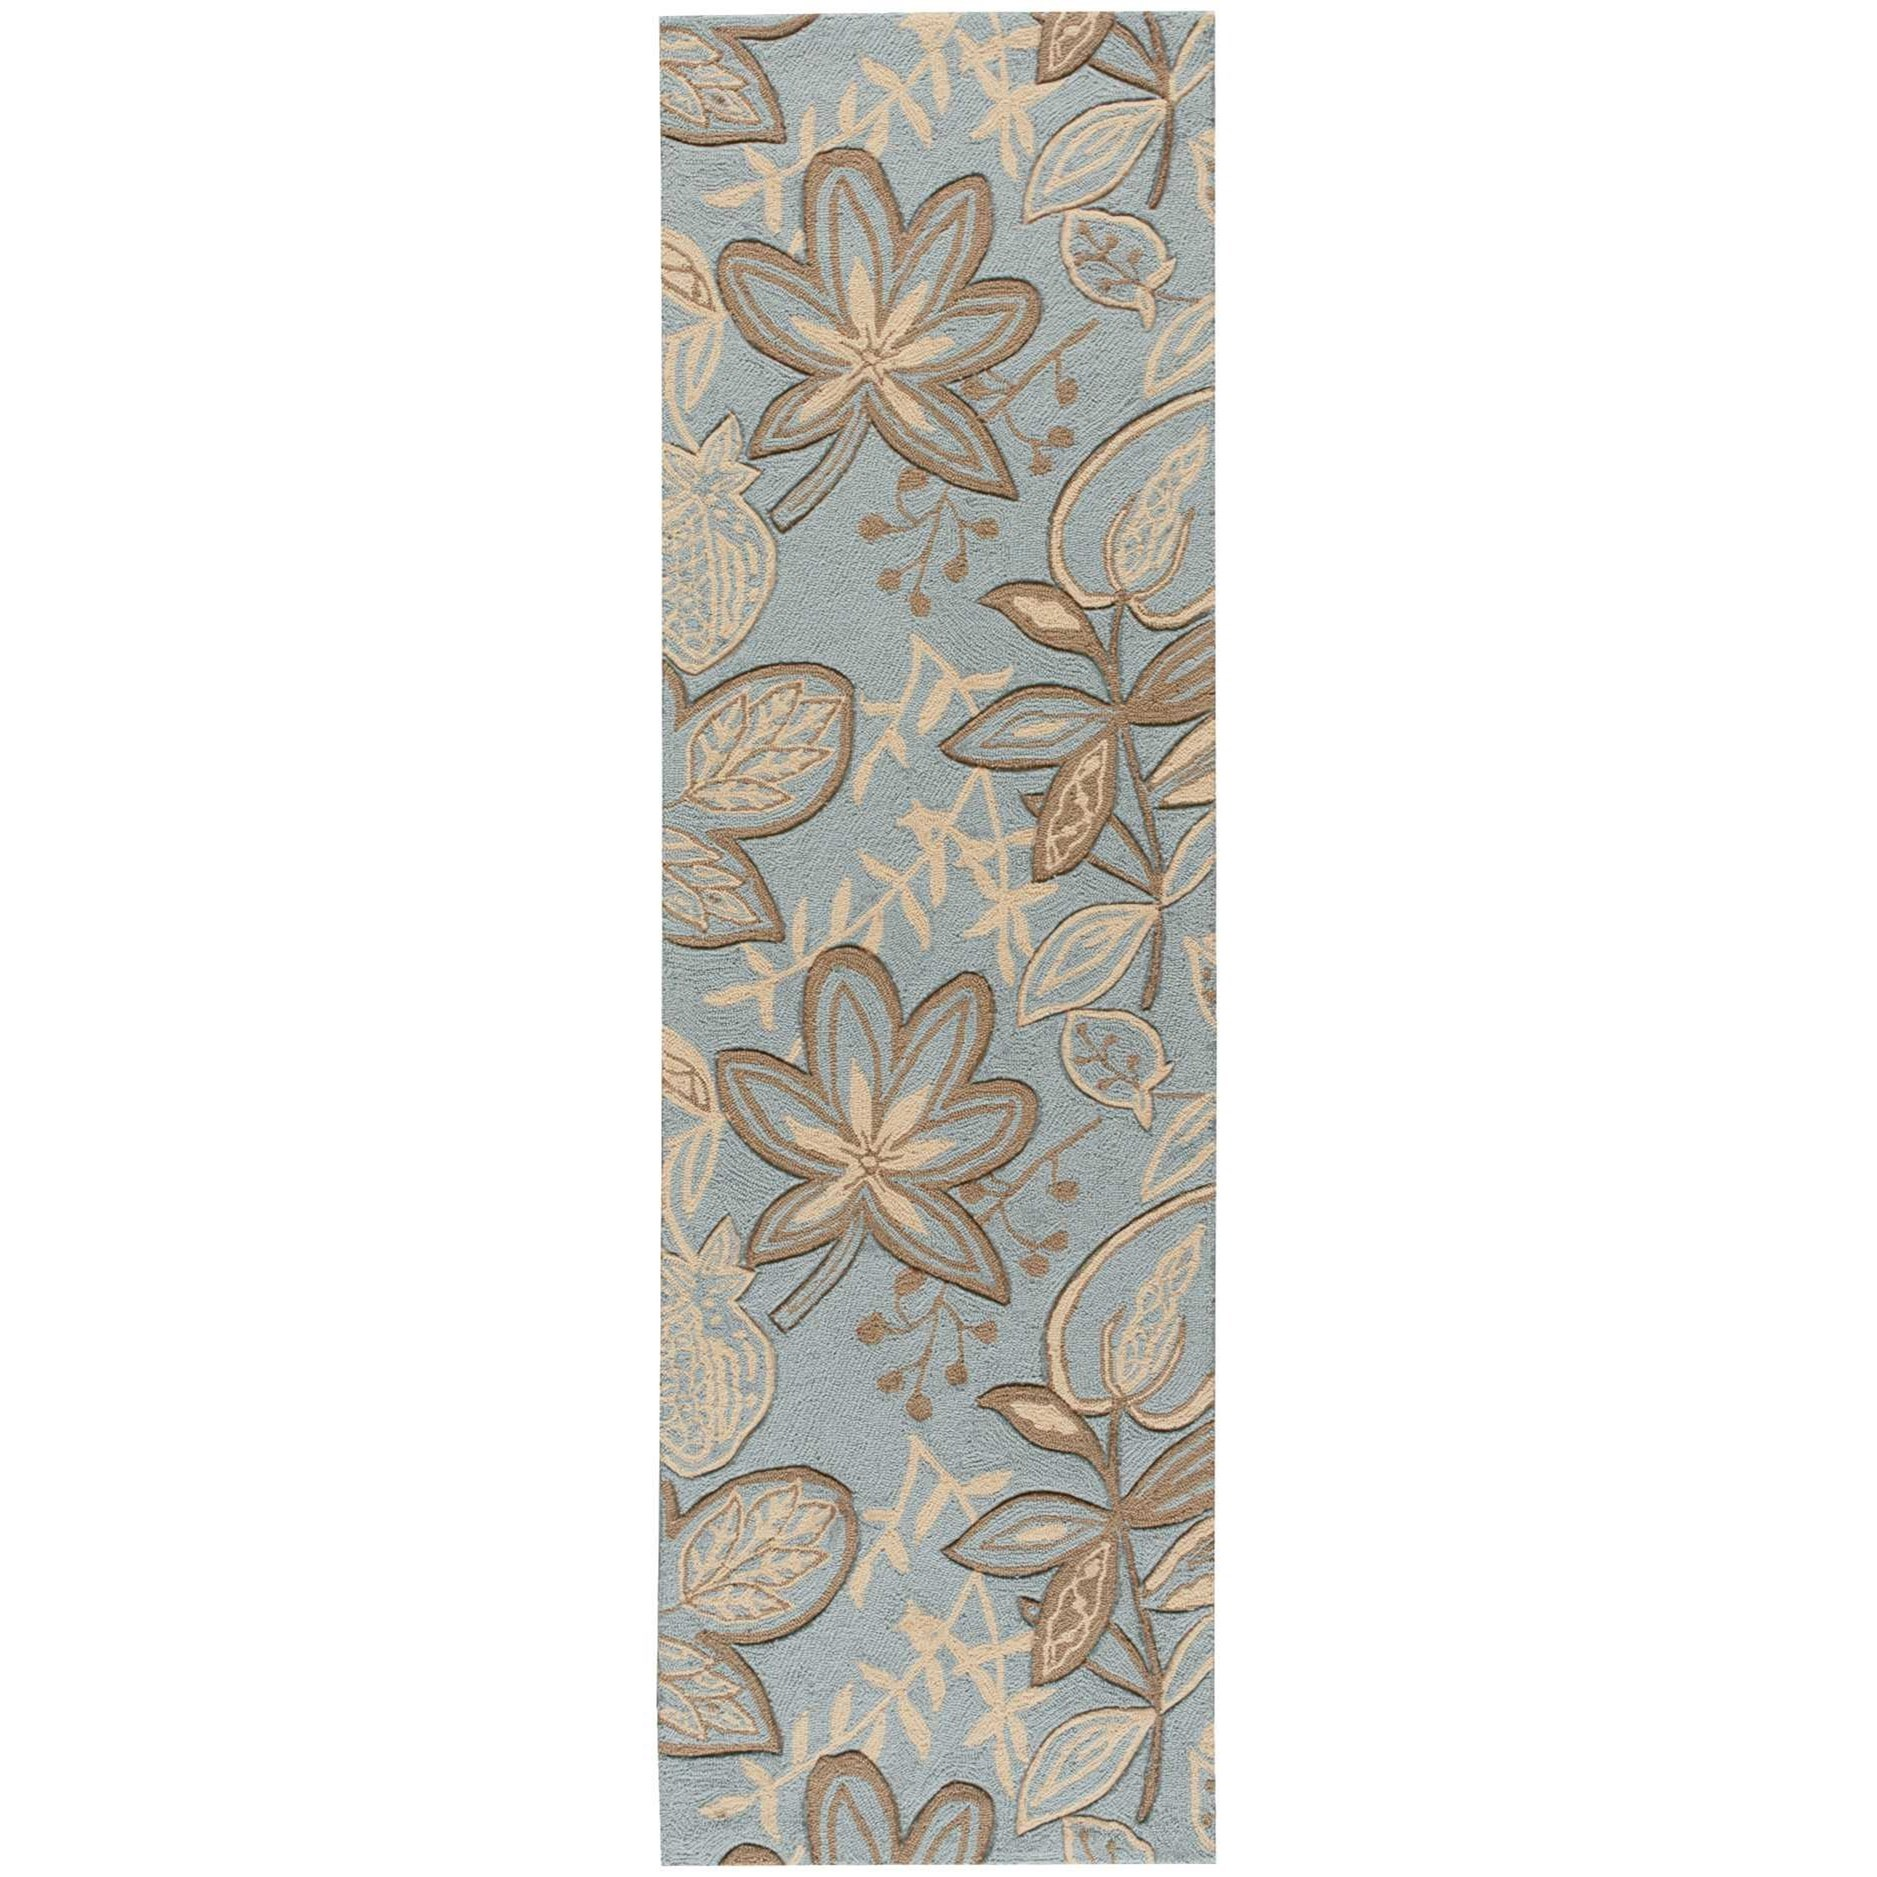 "2'3"" x 8' Light Blue Runner Rug"